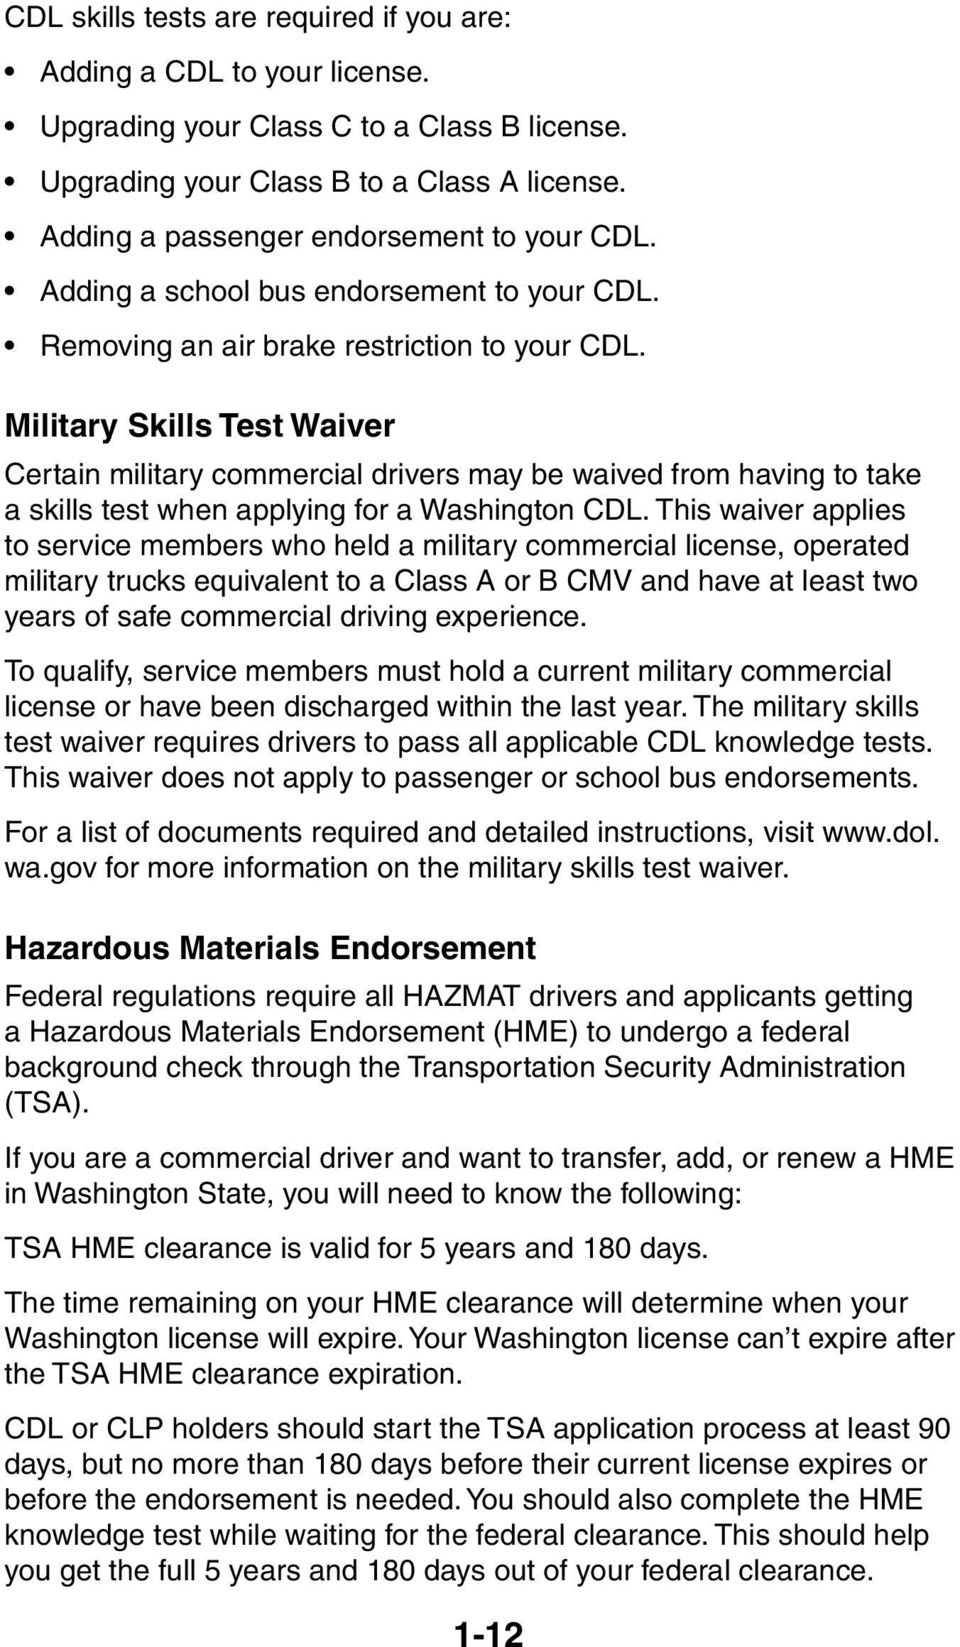 Military Skills Test Waiver Certain military commercial drivers may be waived from having to take a skills test when applying for a Washington CDL.